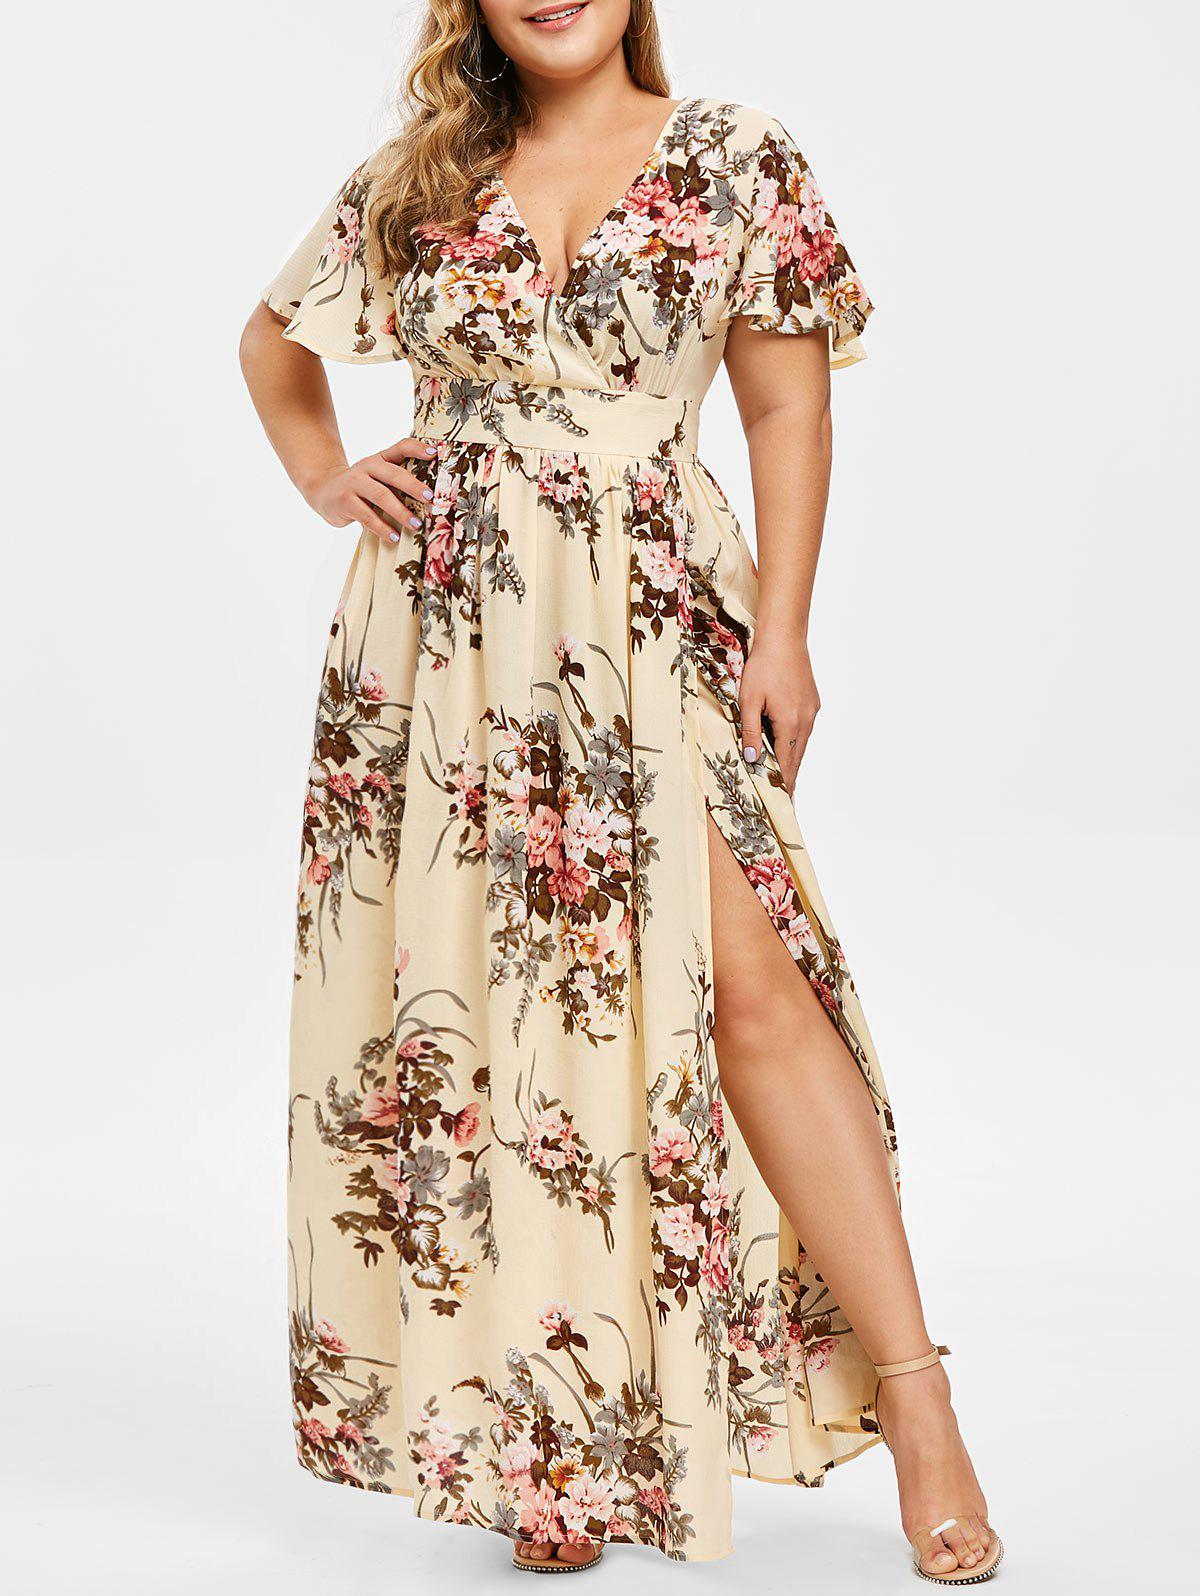 Plus Size Plunging Neck Floral Split Maxi Dress - CORNSILK 4X